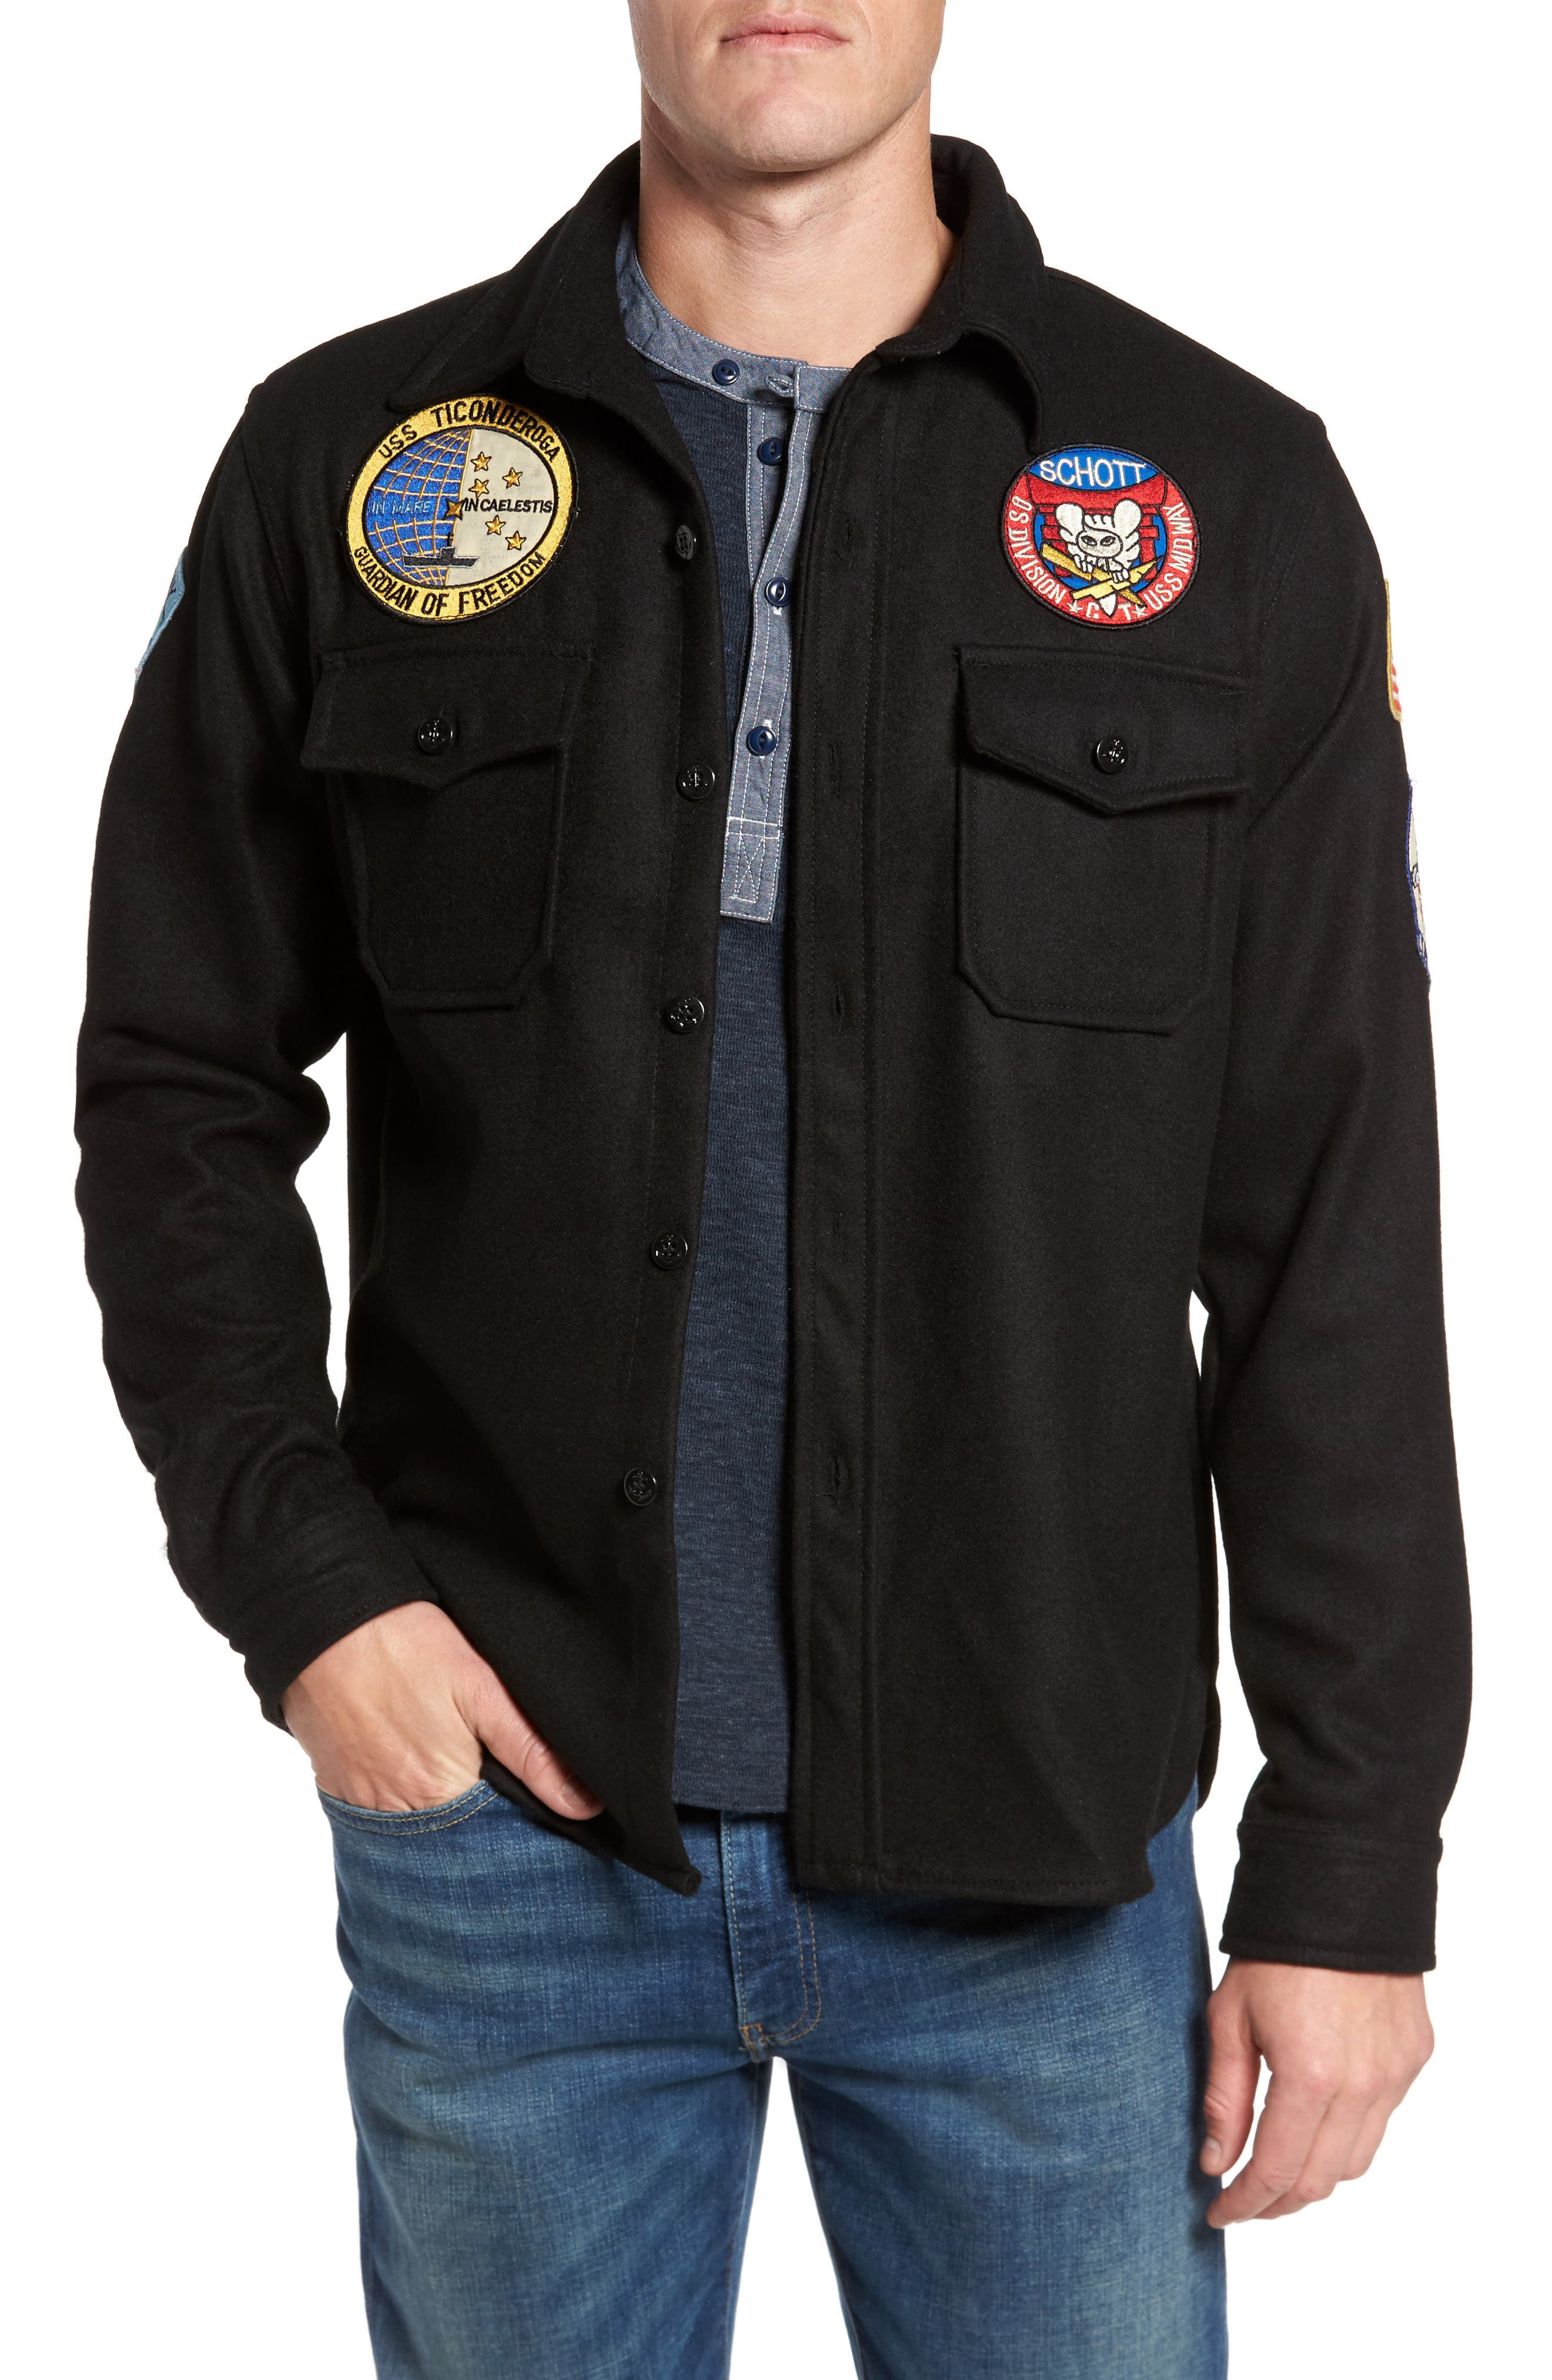 Alternate Image 1 Selected - Schott NYC Embroidered Patch Wool Blend Jacket